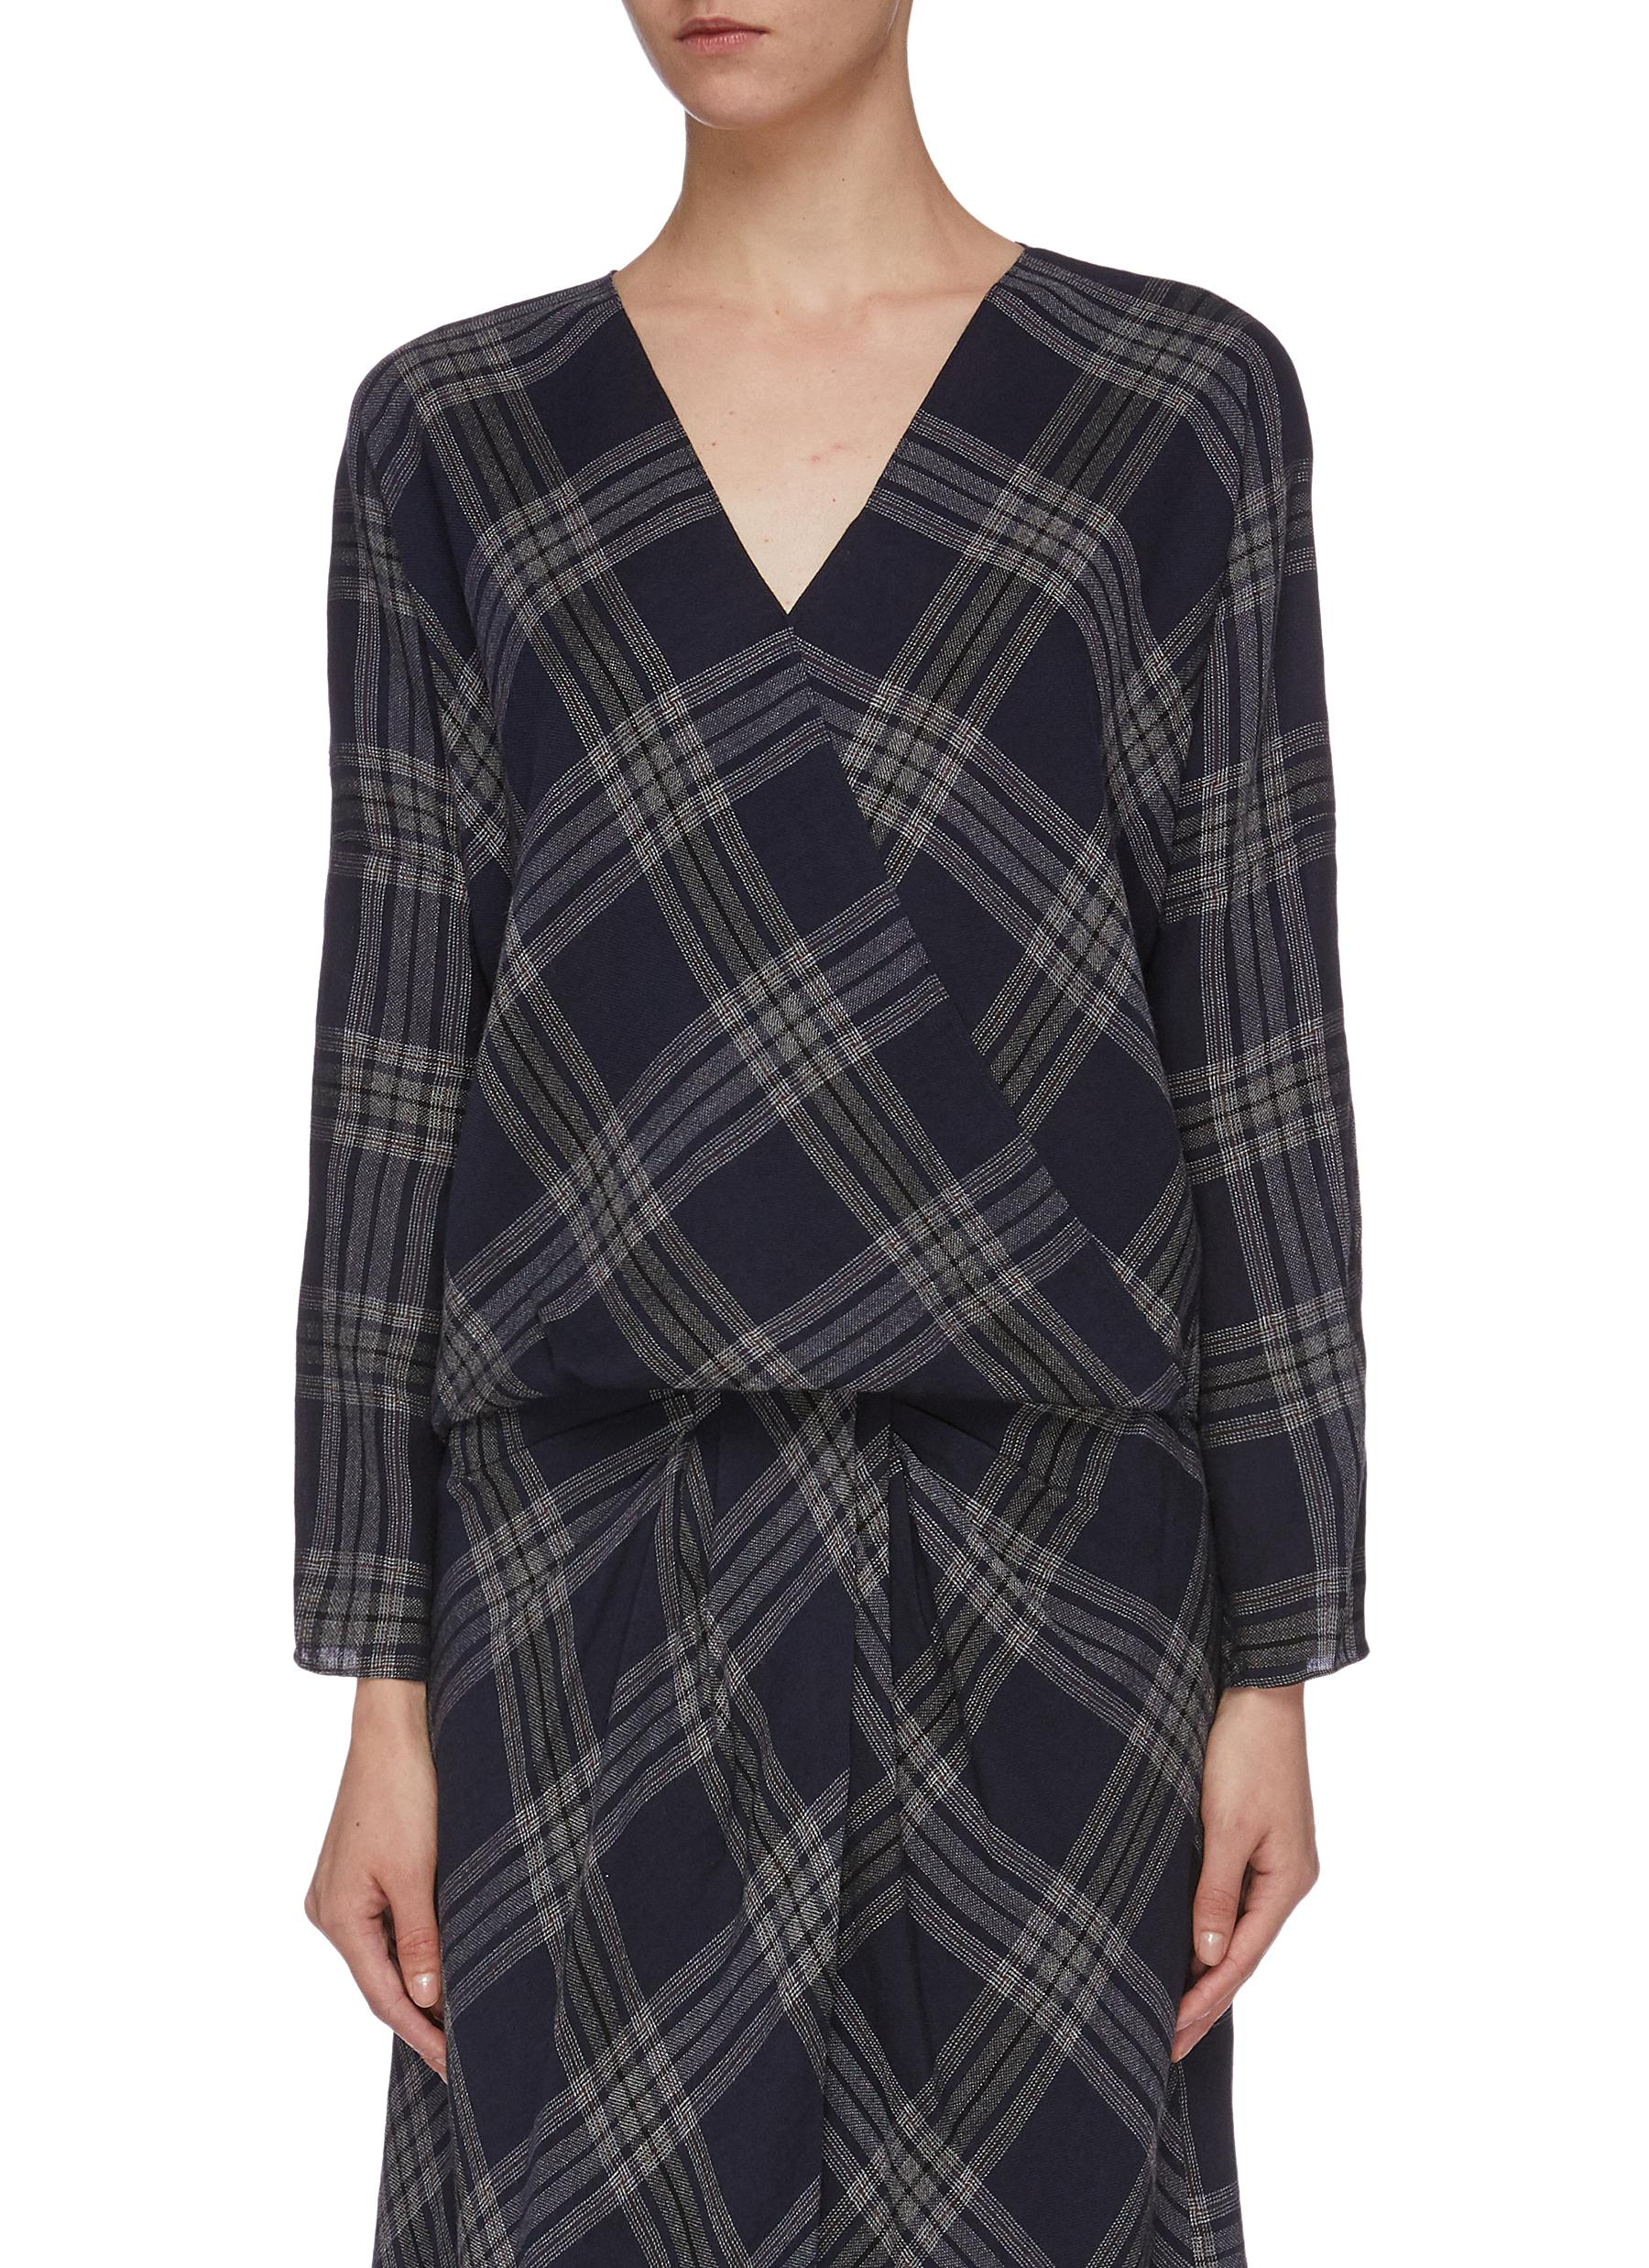 Crossover check plaid blouse by Vince